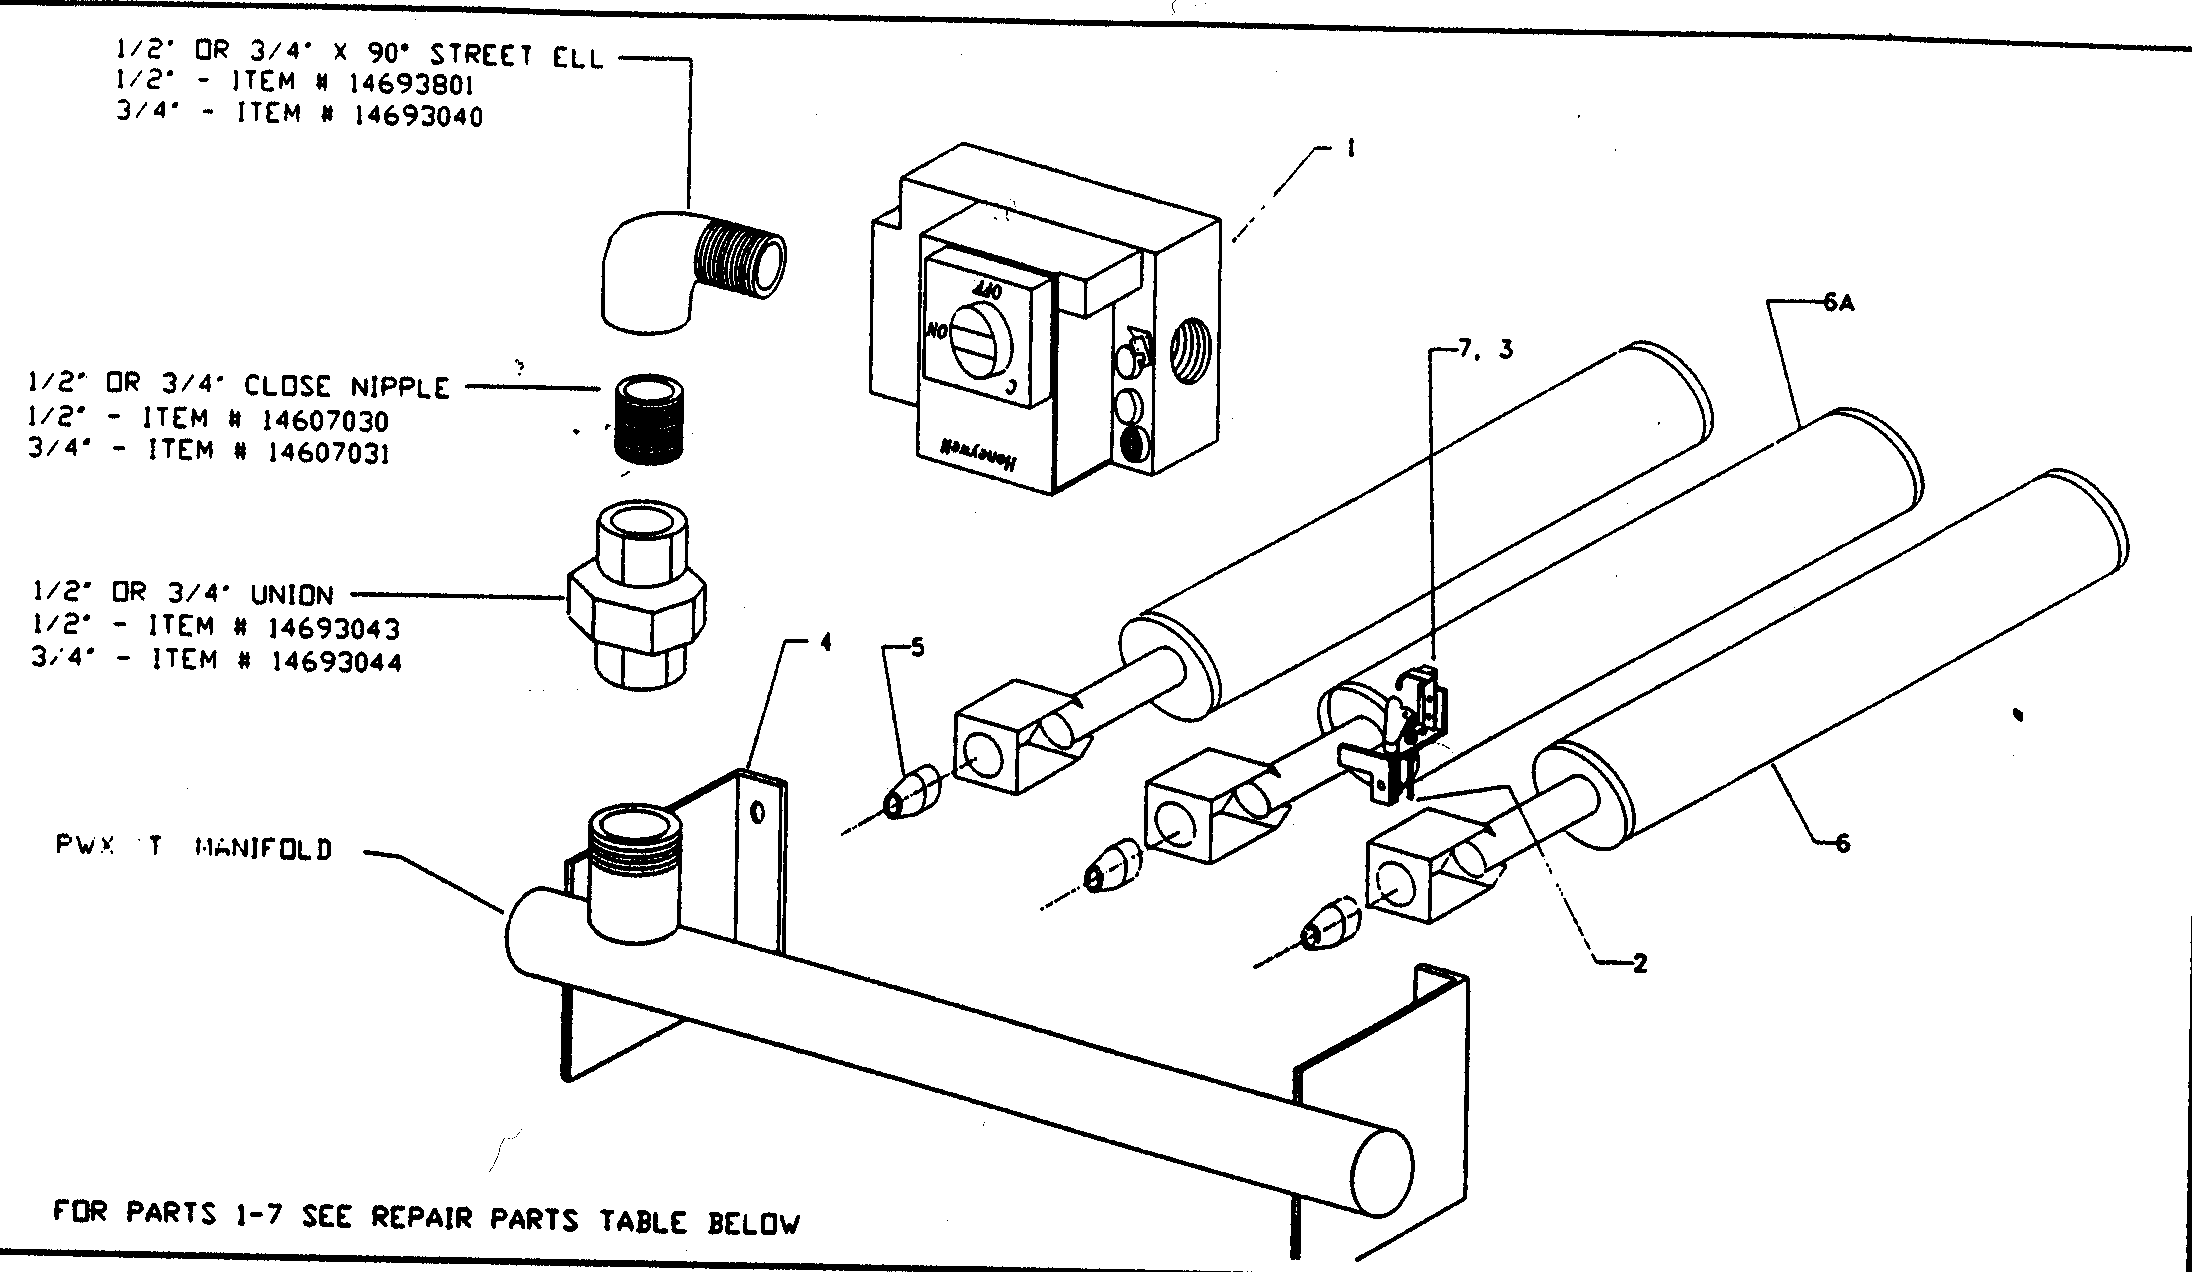 Boiler Parts: Diagram Of Boiler Parts